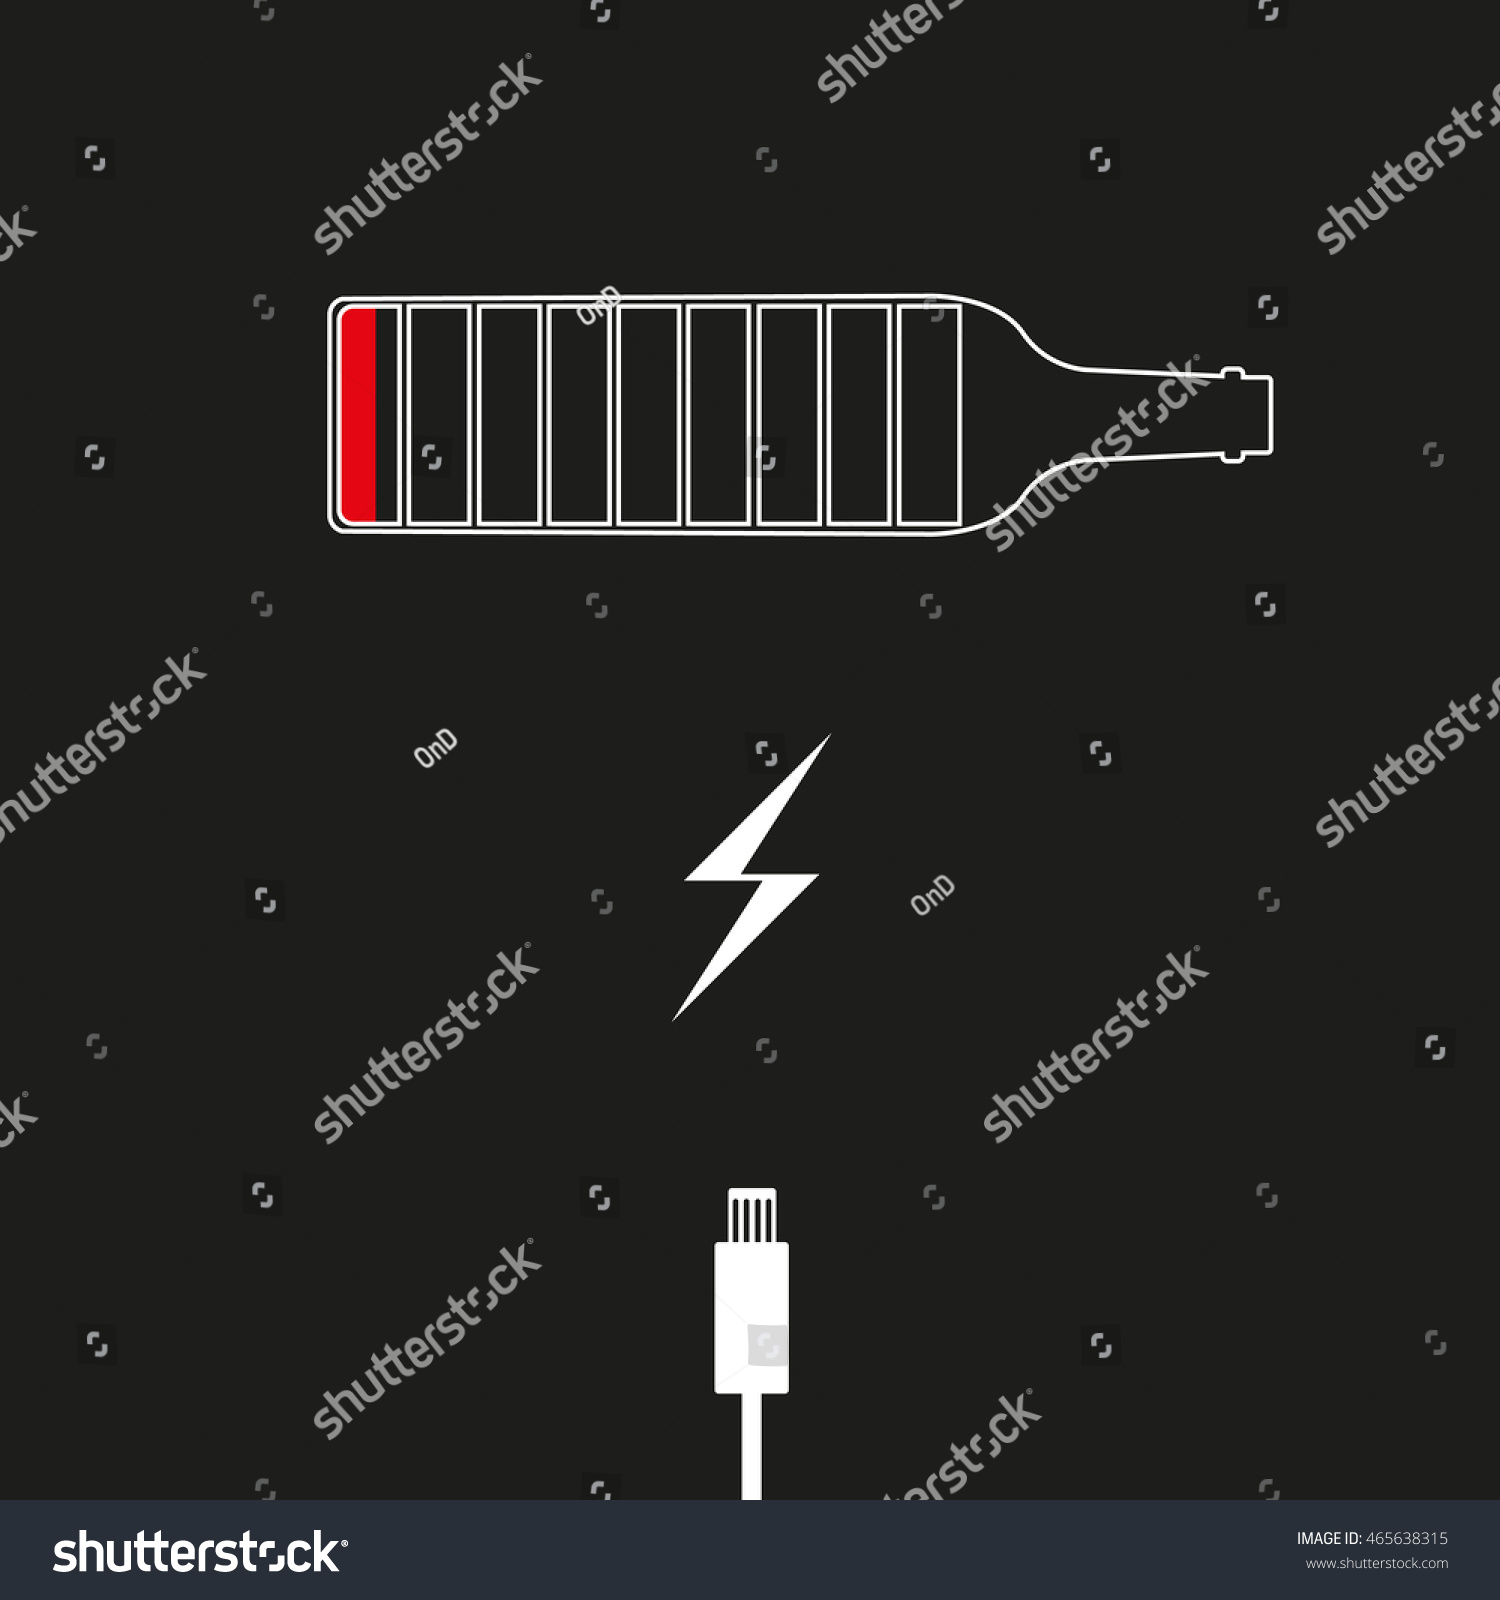 Abstract Bottle Beverage Alcohol Charged Symbol Stock Illustration